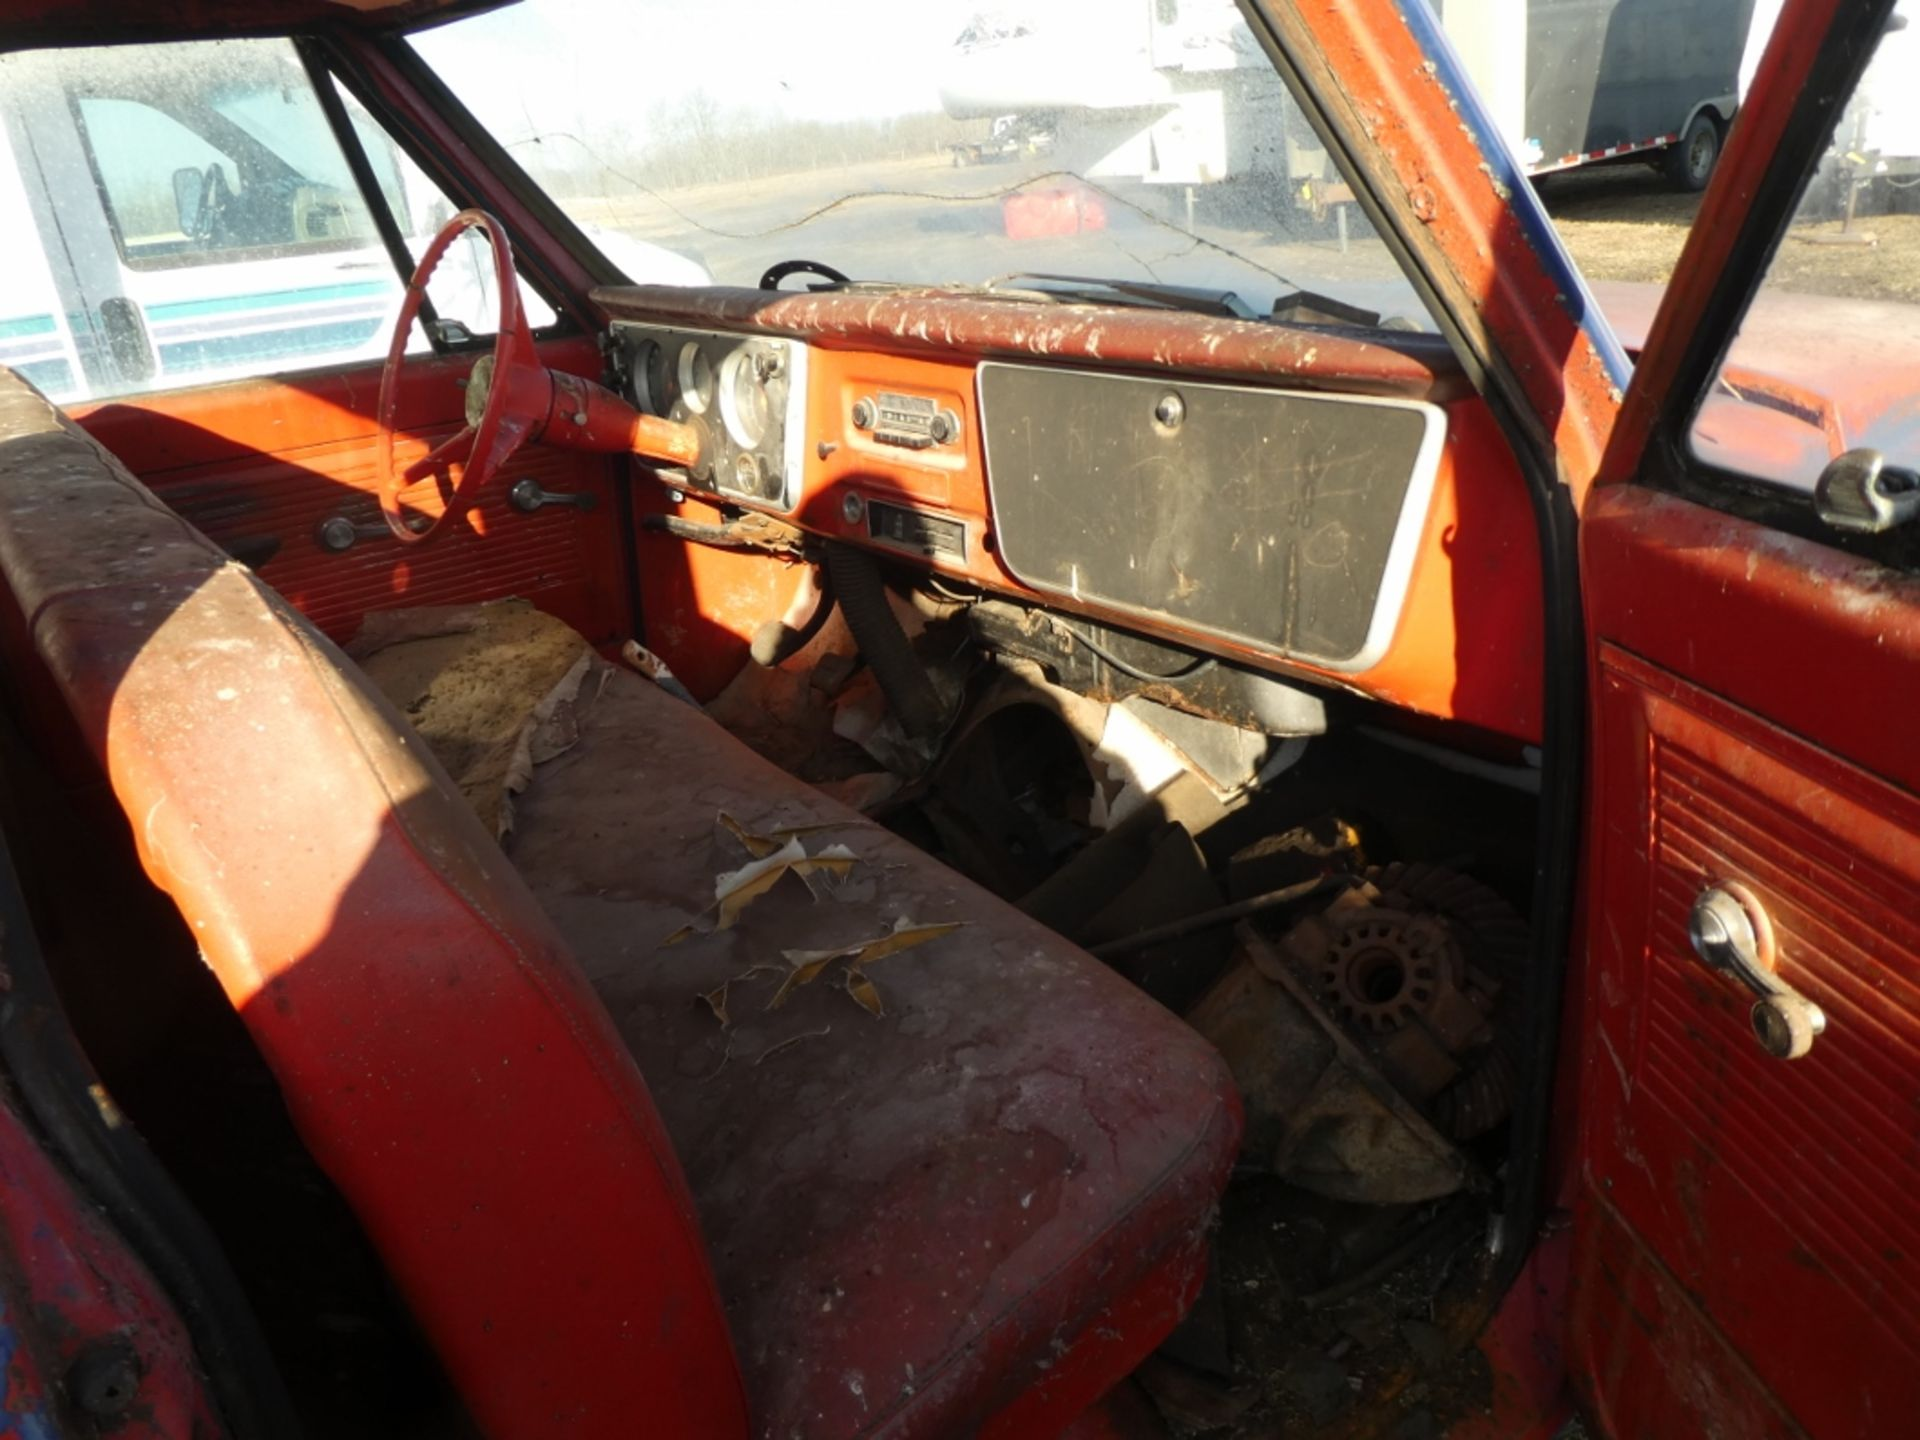 1970'S CHEV 30 CAB & CHASSIS - REG CAB, DUALS, NO ENGINE OR TRANSMISSION S/N CE3371125498 - Image 8 of 9